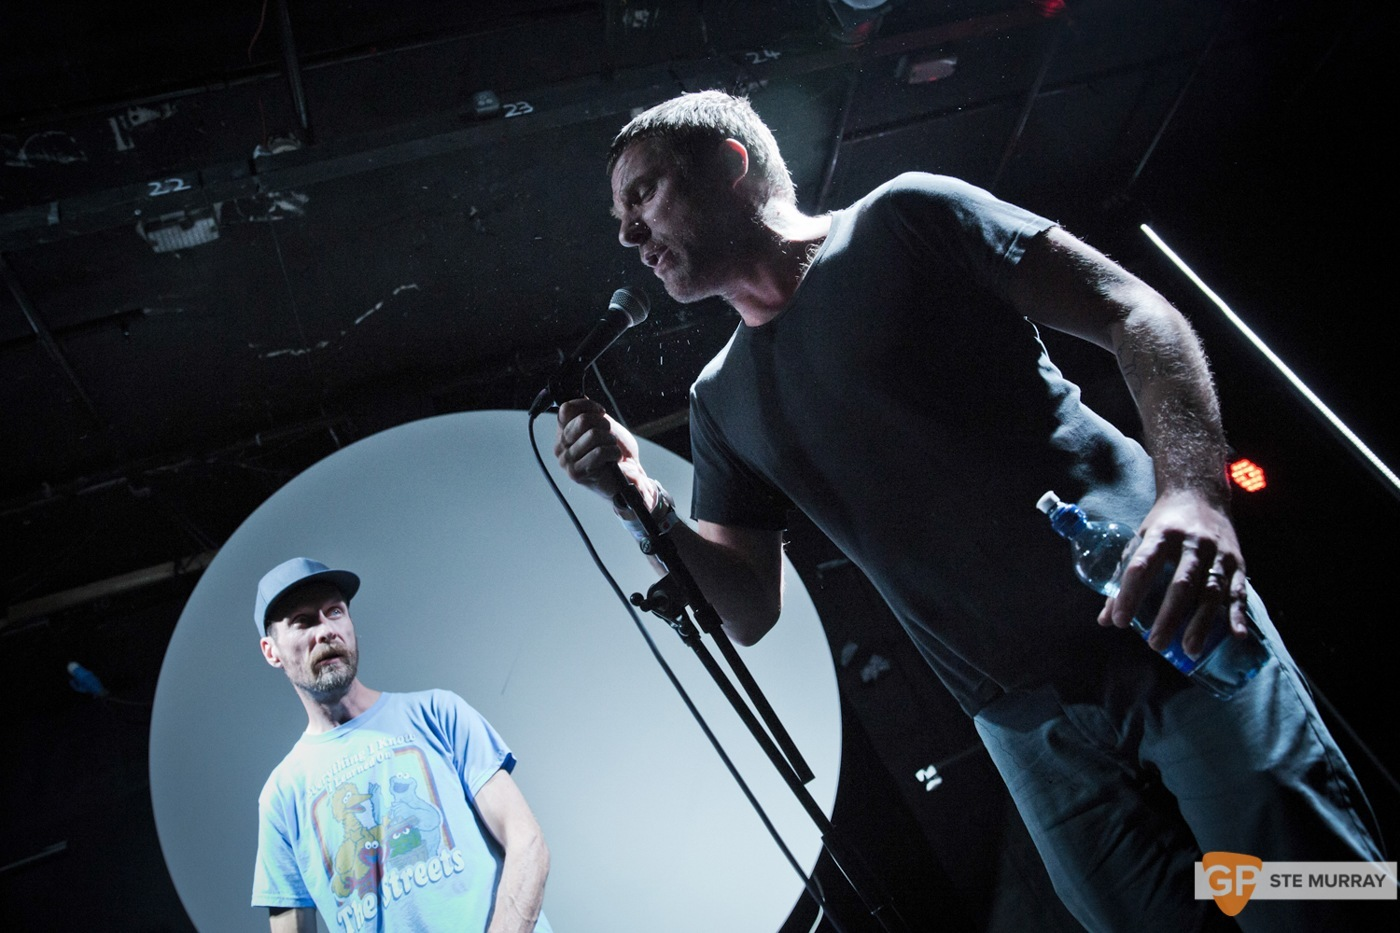 Sleaford Mods at District 8 by Ste Murray22